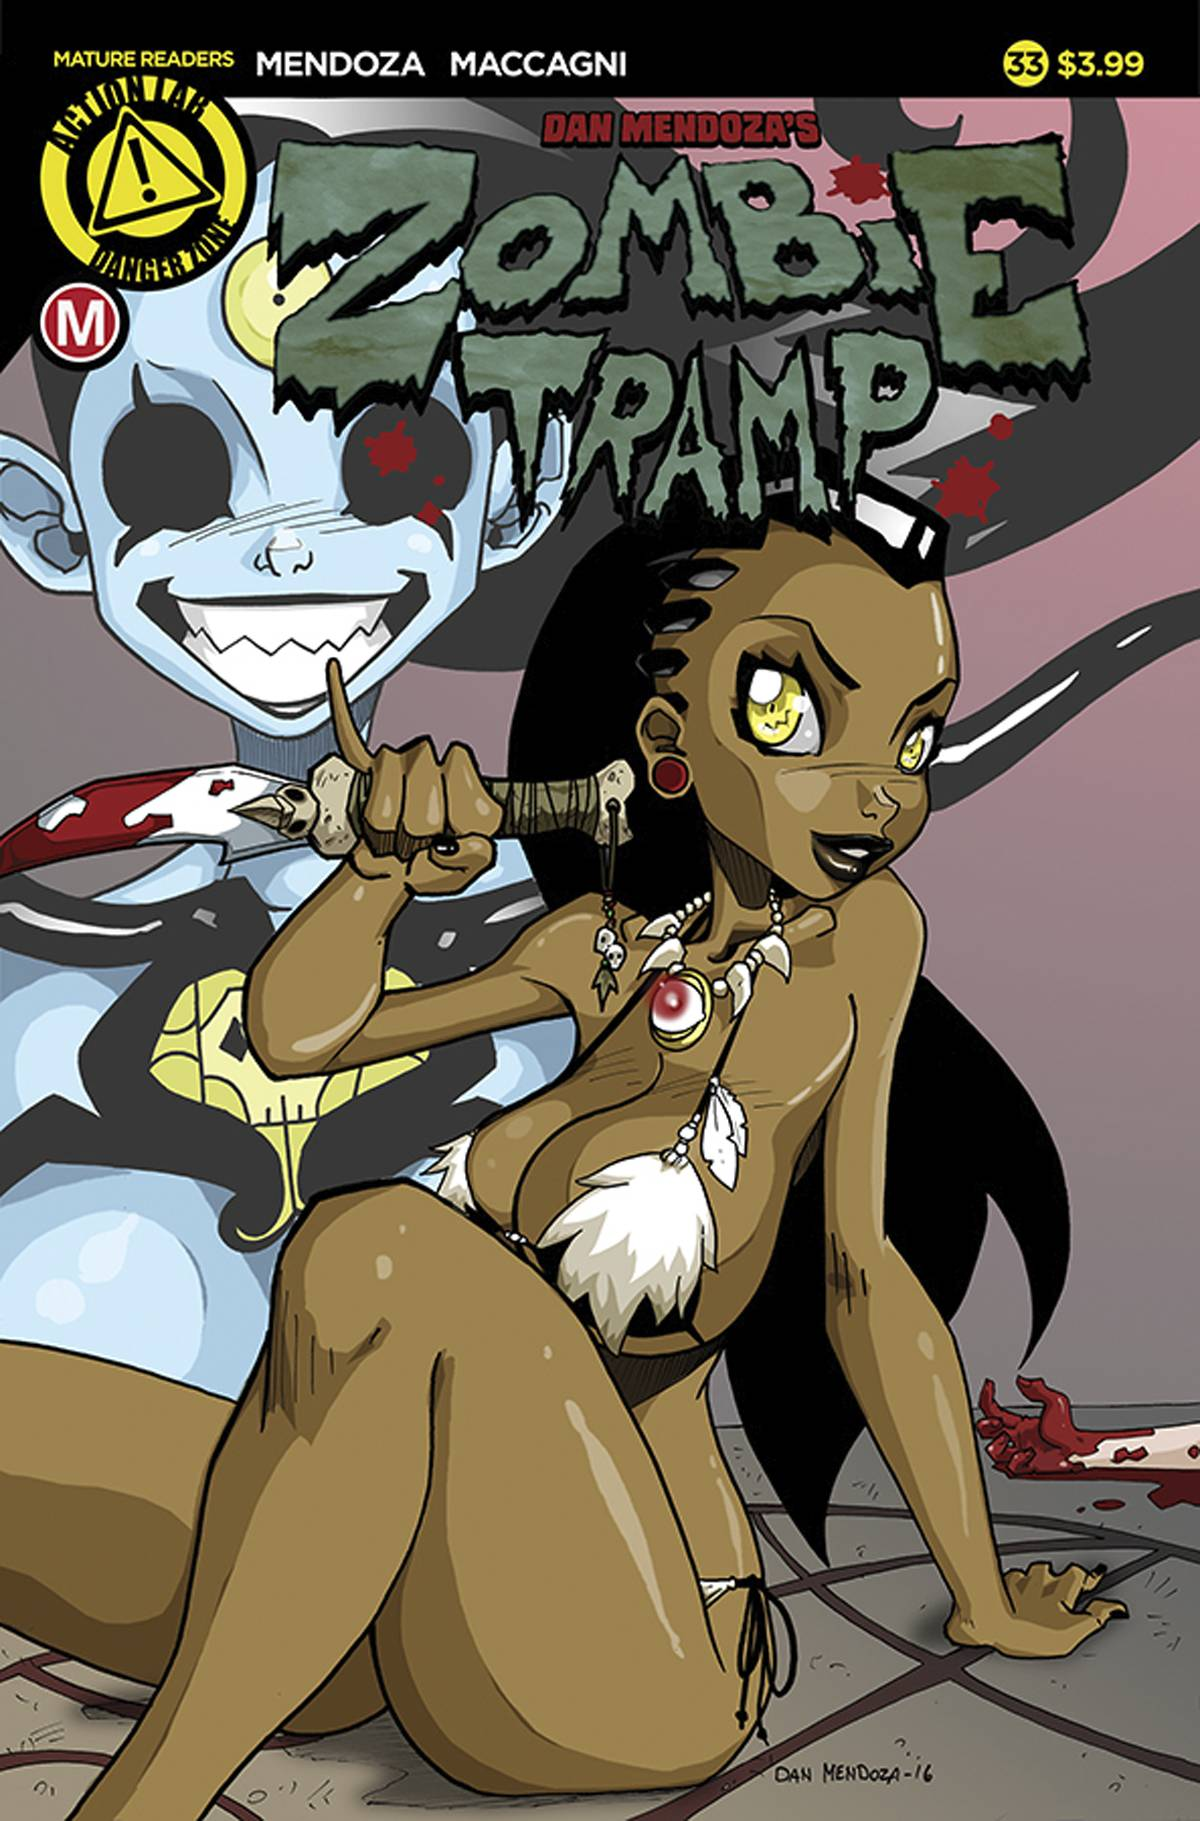 ZOMBIE TRAMP ONGOING #33 CVR A MENDOZA